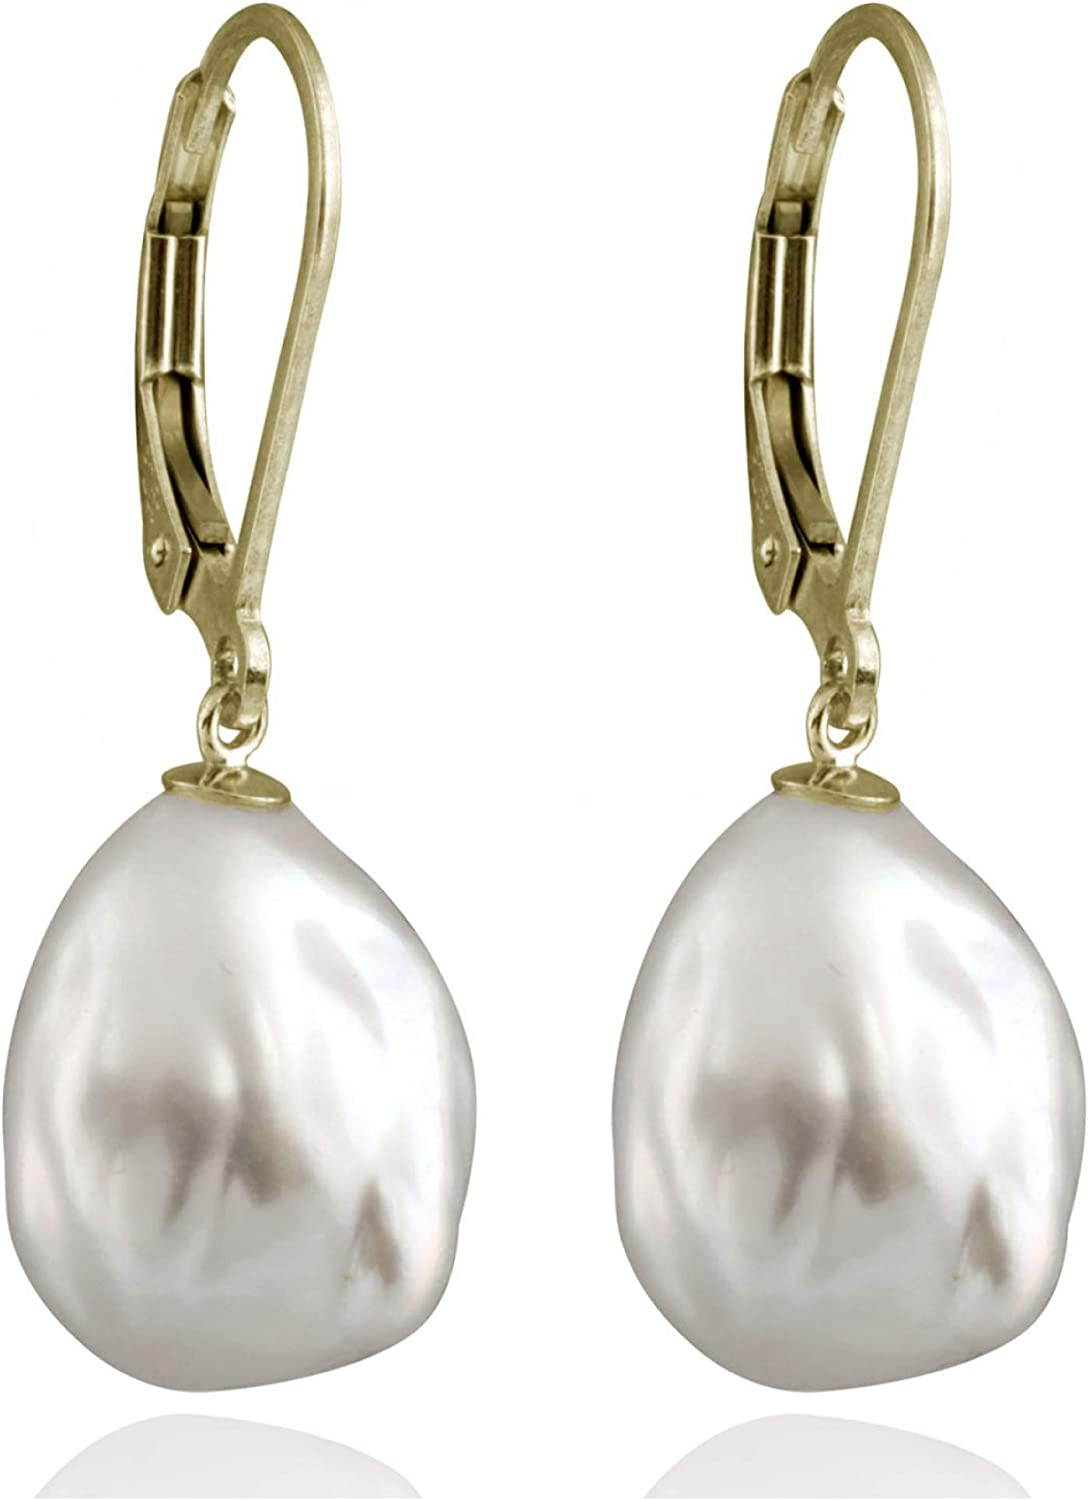 Splendid Pearls Lever-back Dangling Earrings with White Baroque Freshwater Cultured Pearls 10-12mm